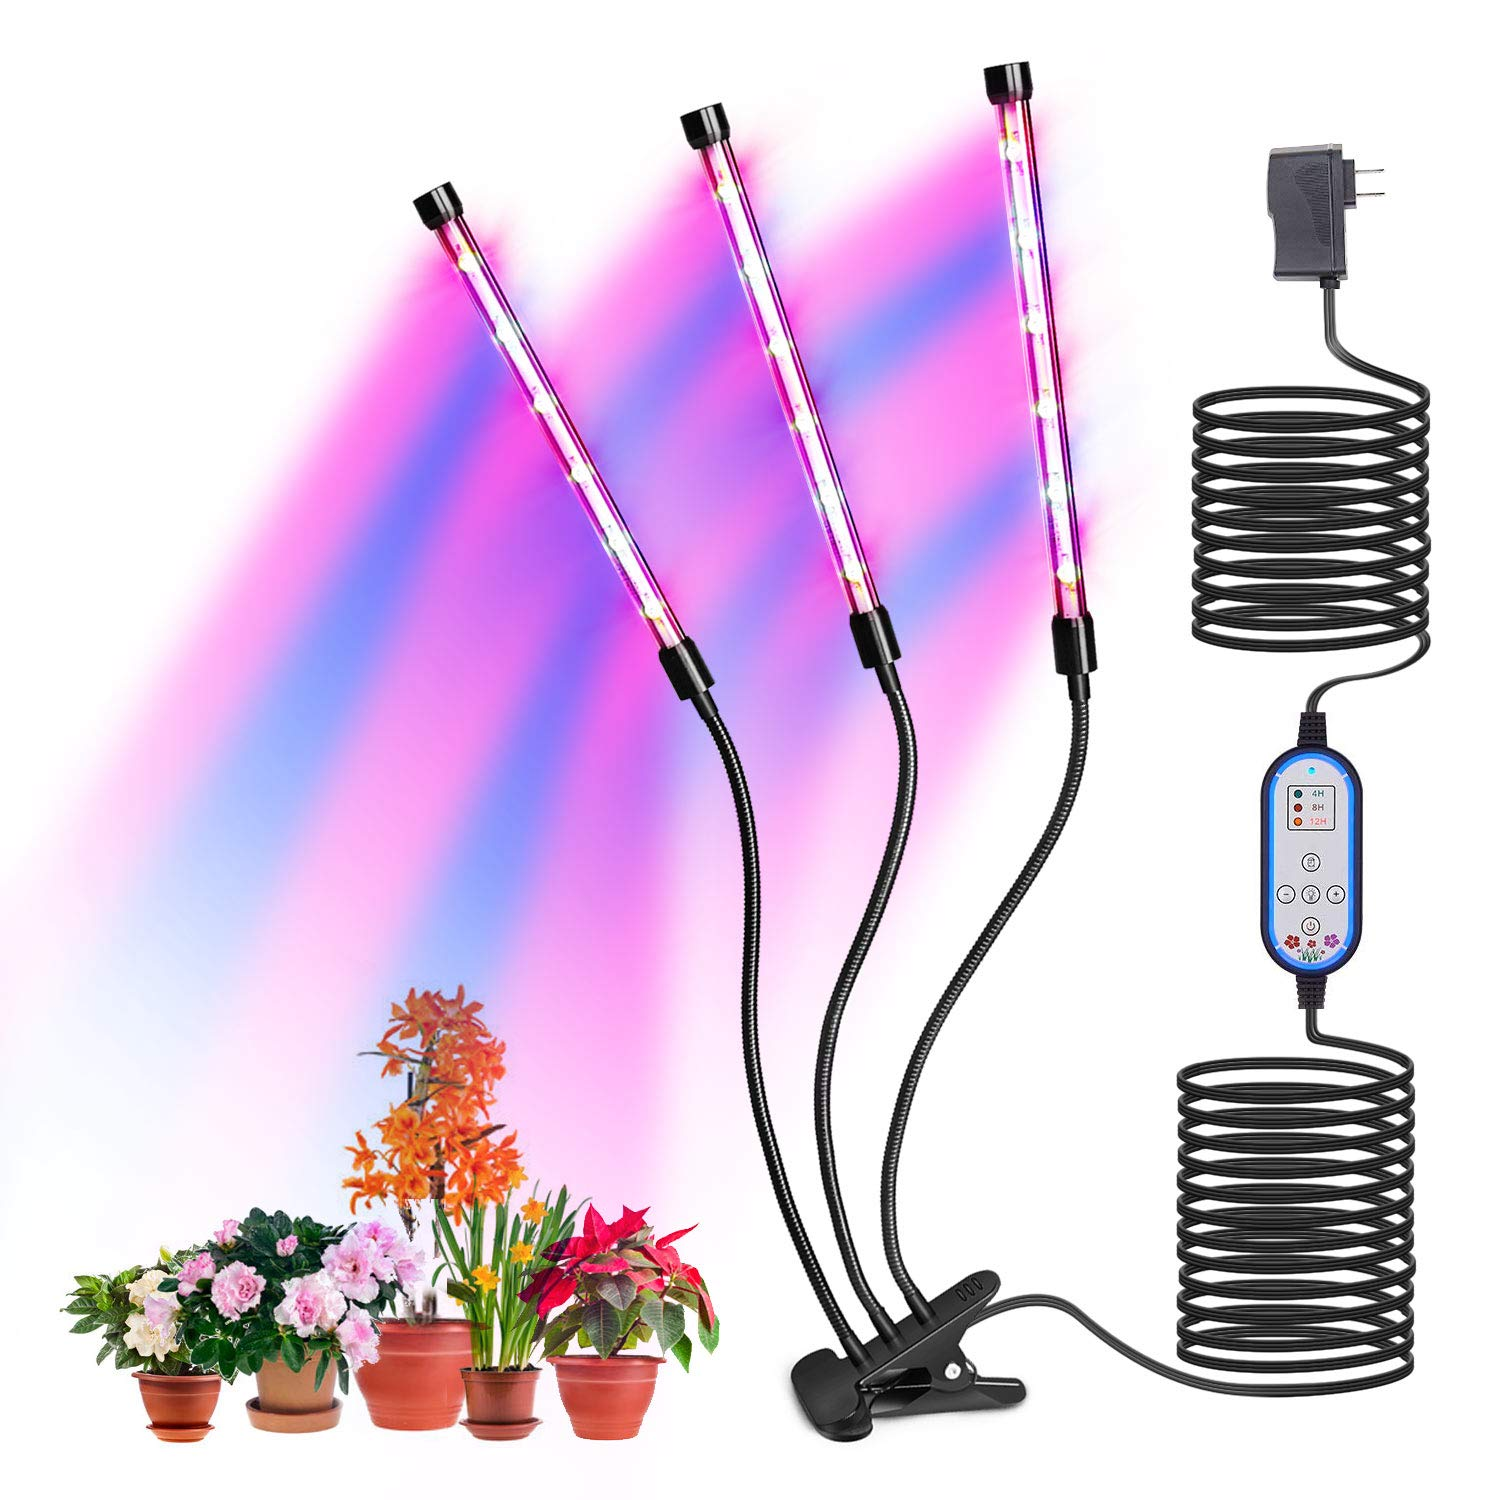 Plants Growing Lamp, Indoor Plant Growth Light 10 Dimmable Levels, 4 8 12 H Timer Auto ON Off 36W 18LED Bulbs with Red Blue Spectrum,Hydroponics Growth Light for Seedling,Vegetative Flowering.